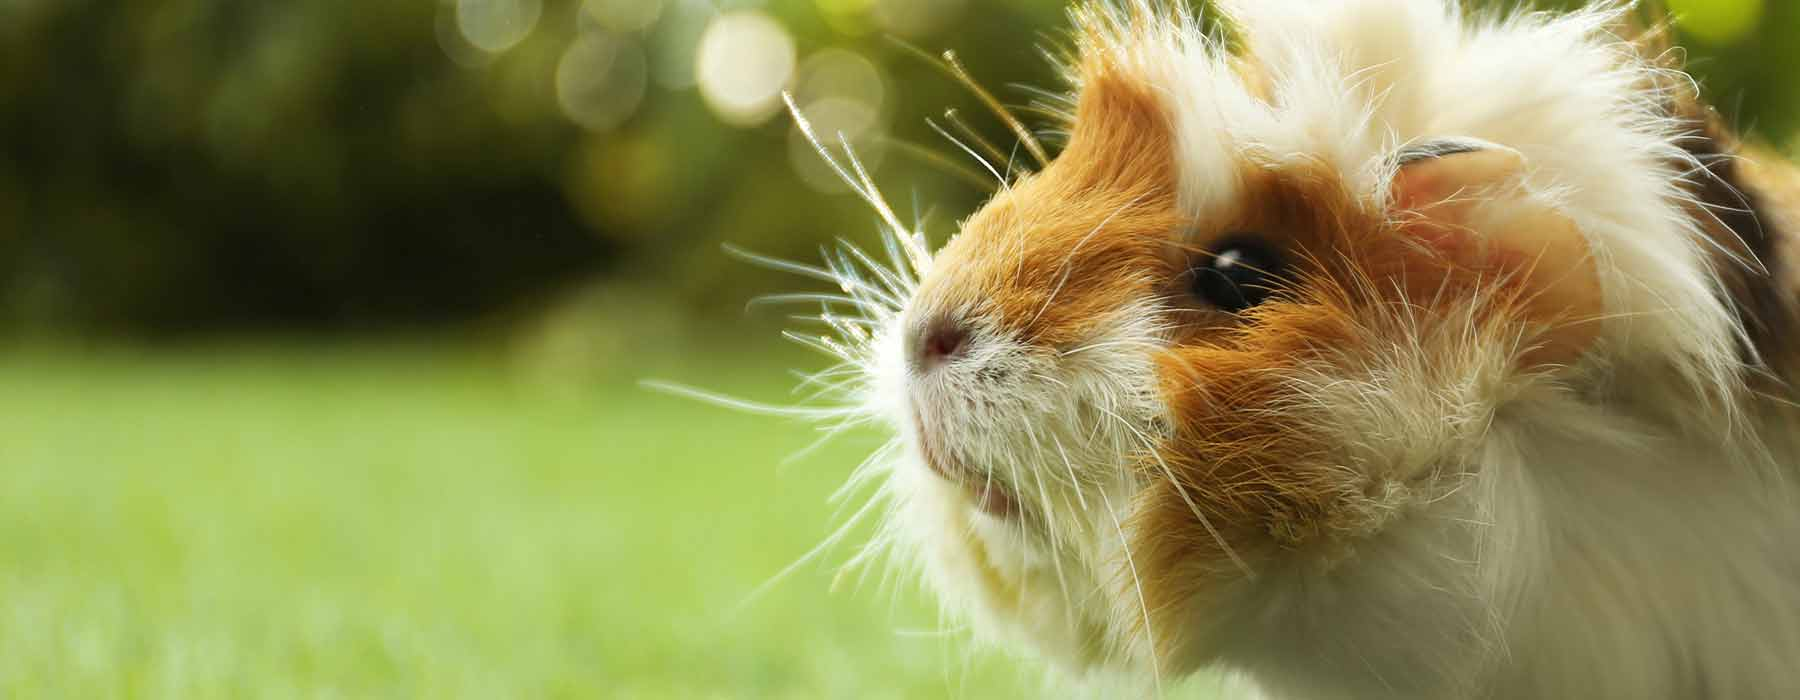 Abyssinian guinea pig outdoors on the grass